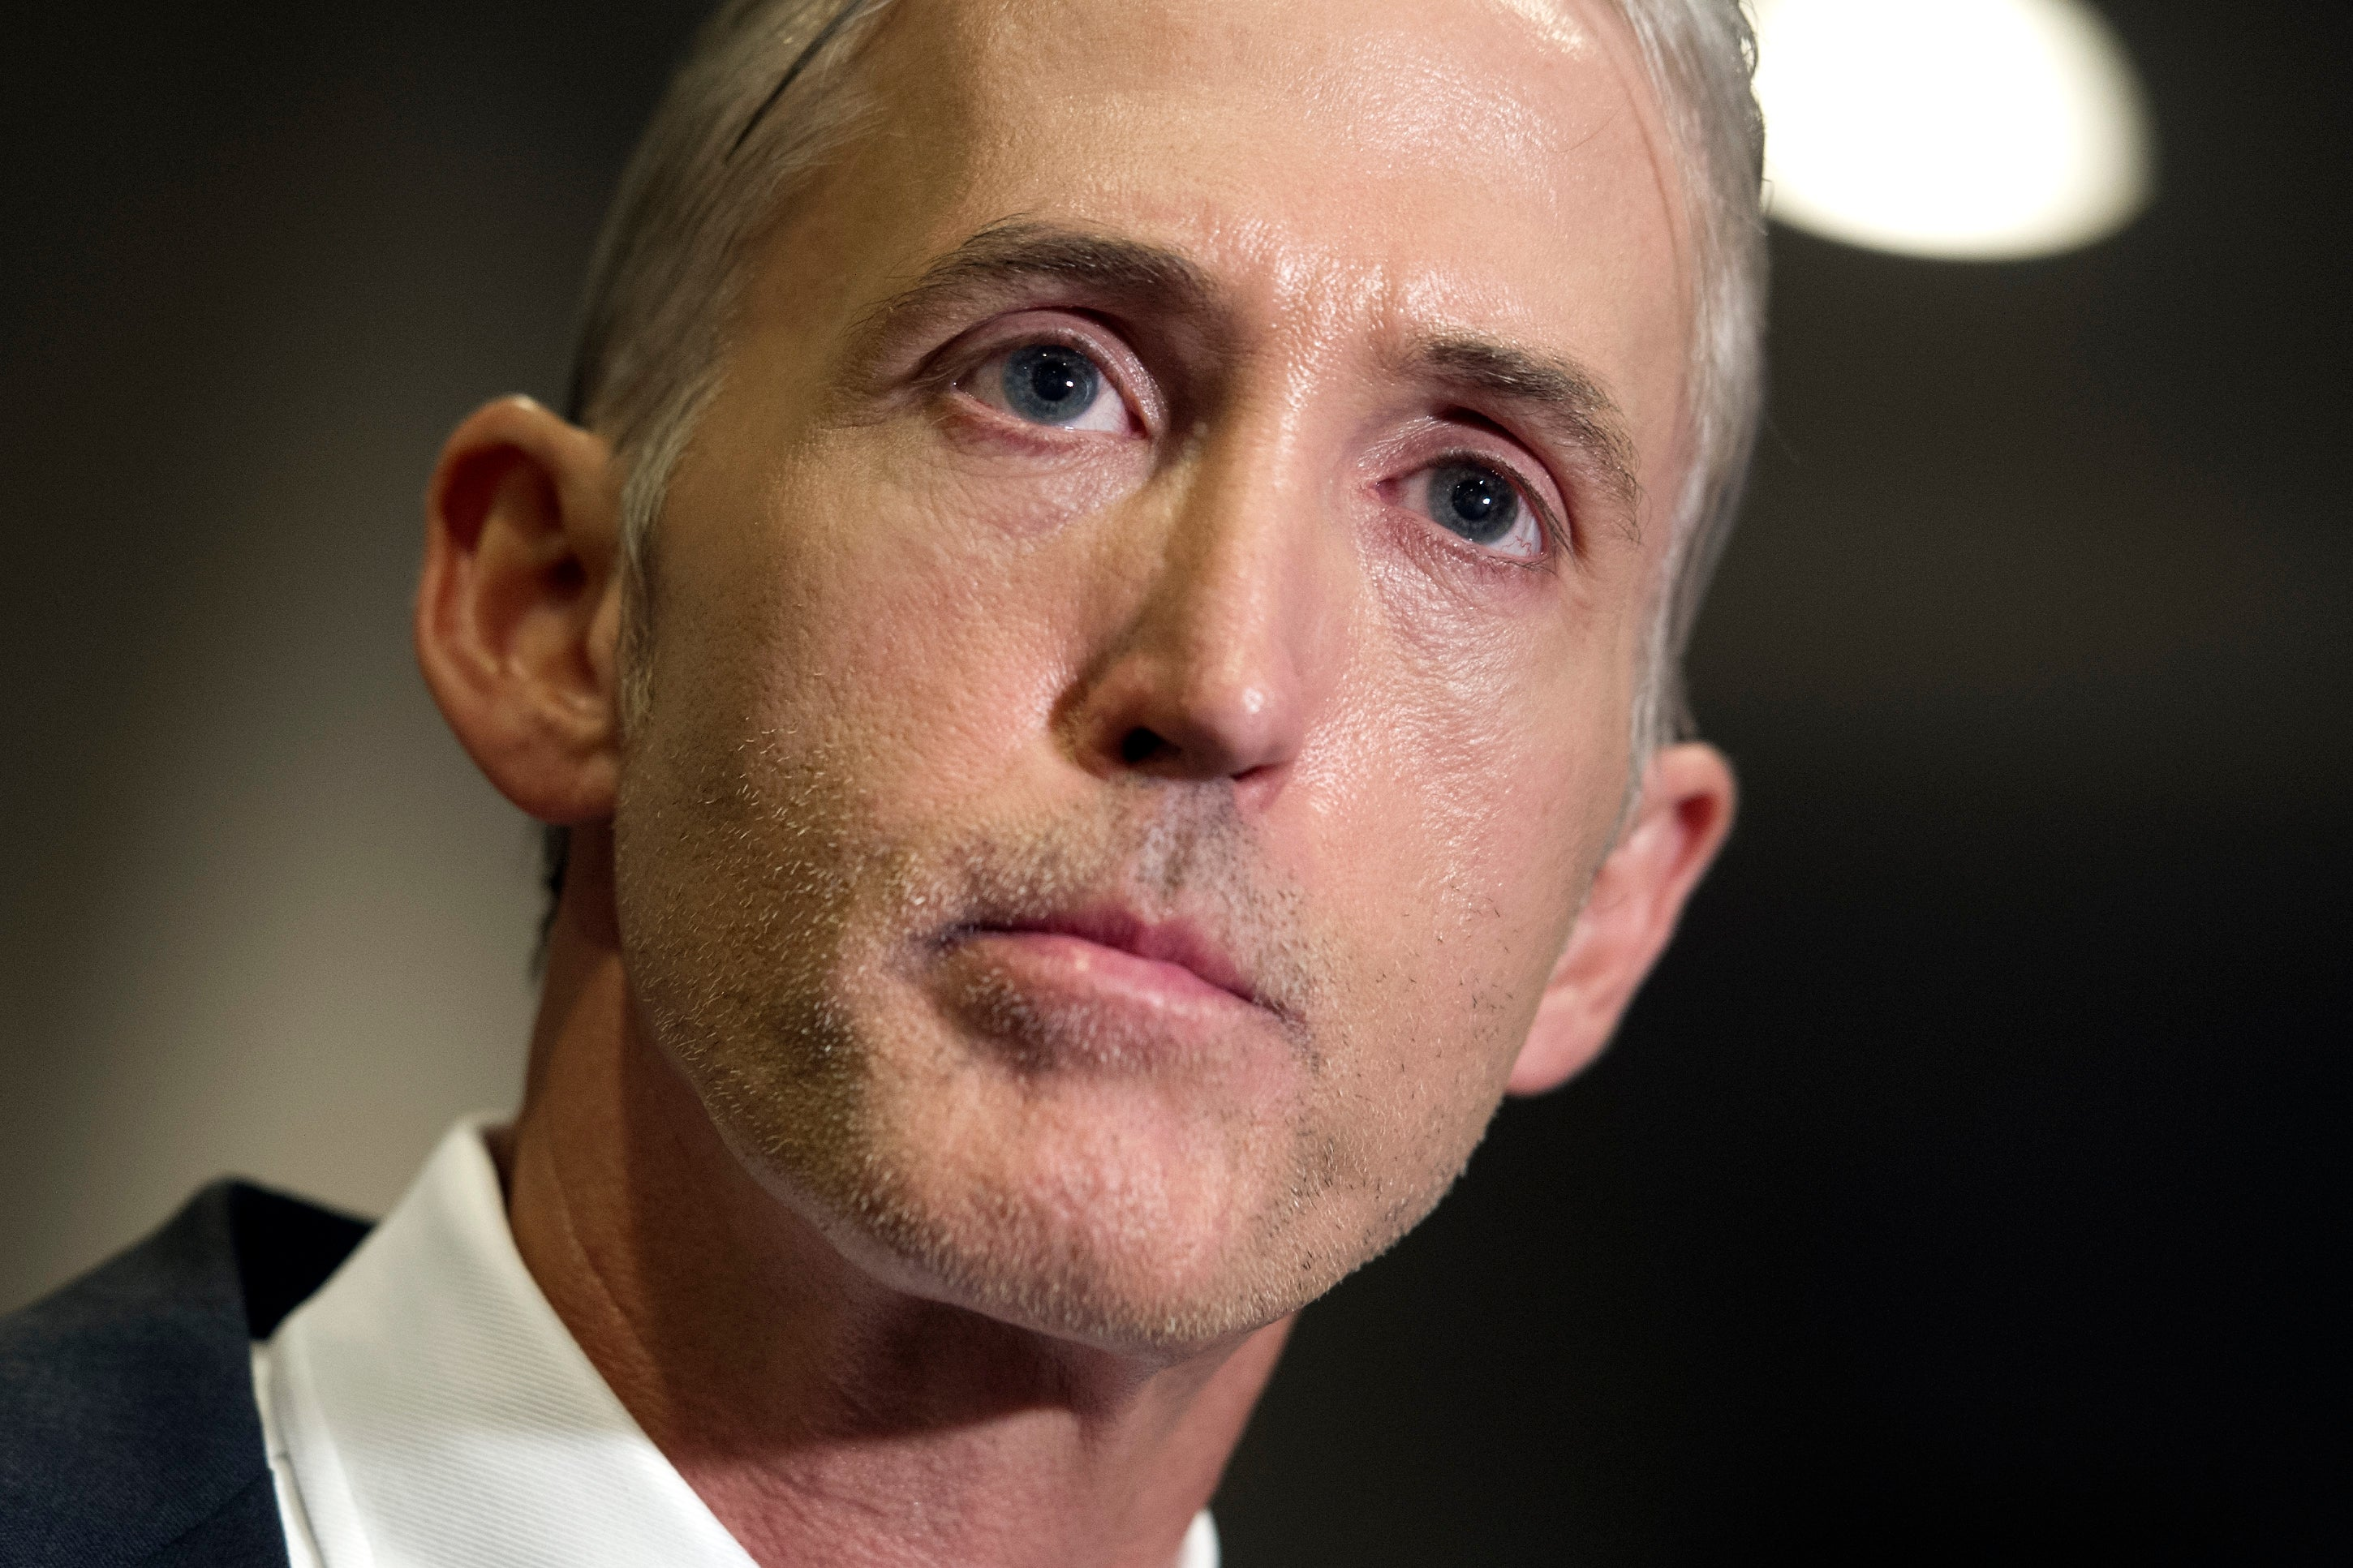 Benghazi Committee Leaks CIA Source Trying to Prove Clinton Emails Could've Led to Leaking CIA Source